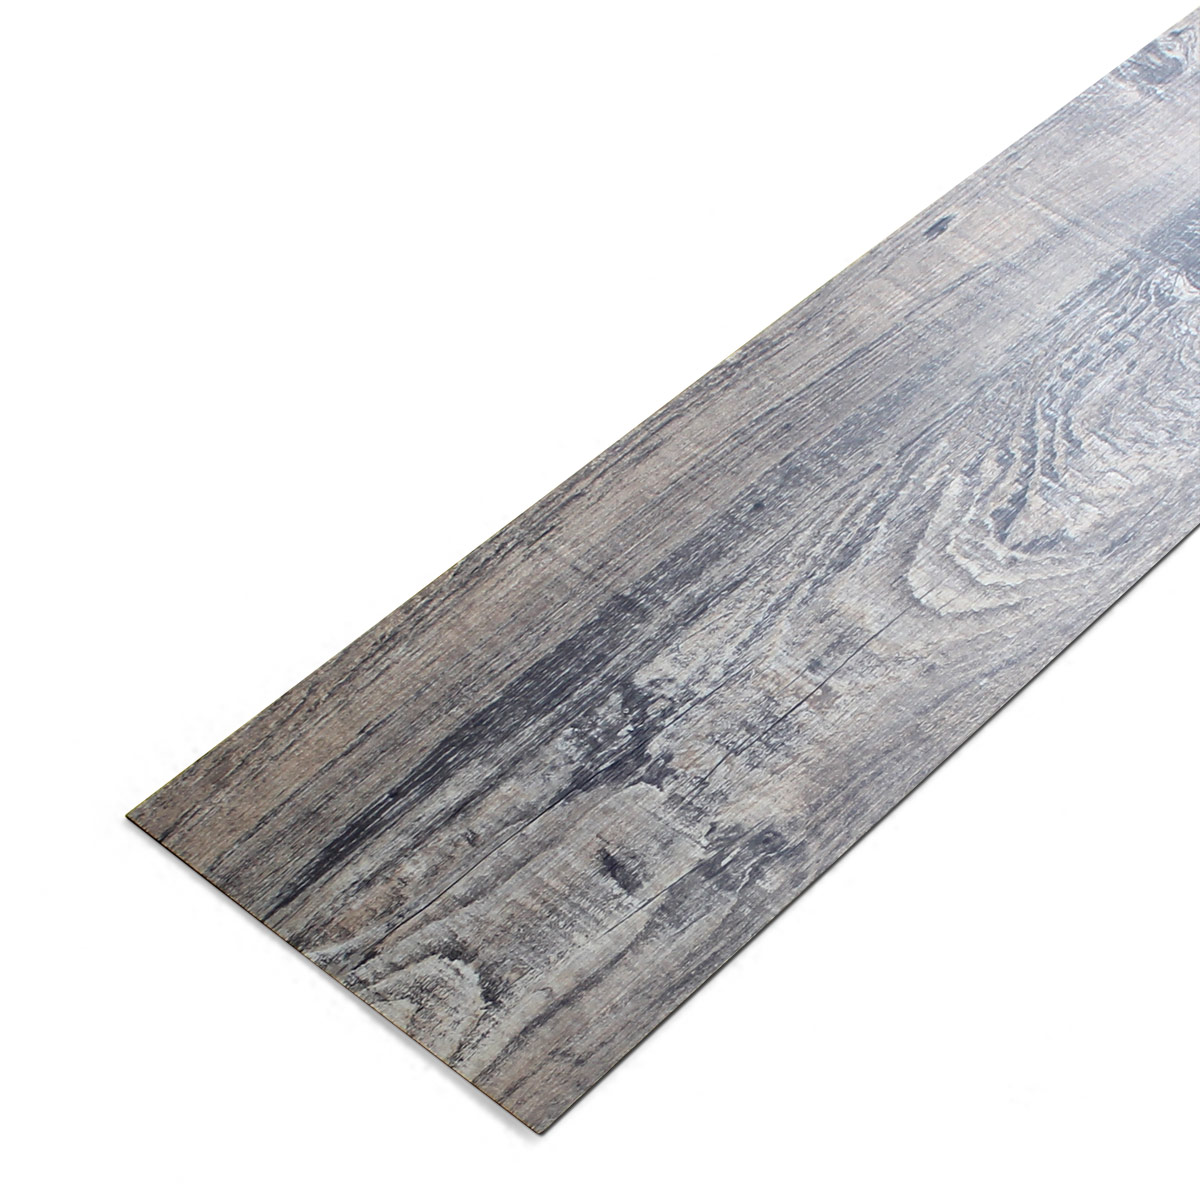 Neuholz 5 02 m vinyl laminate flooring oak wood planks for Pvc wood flooring